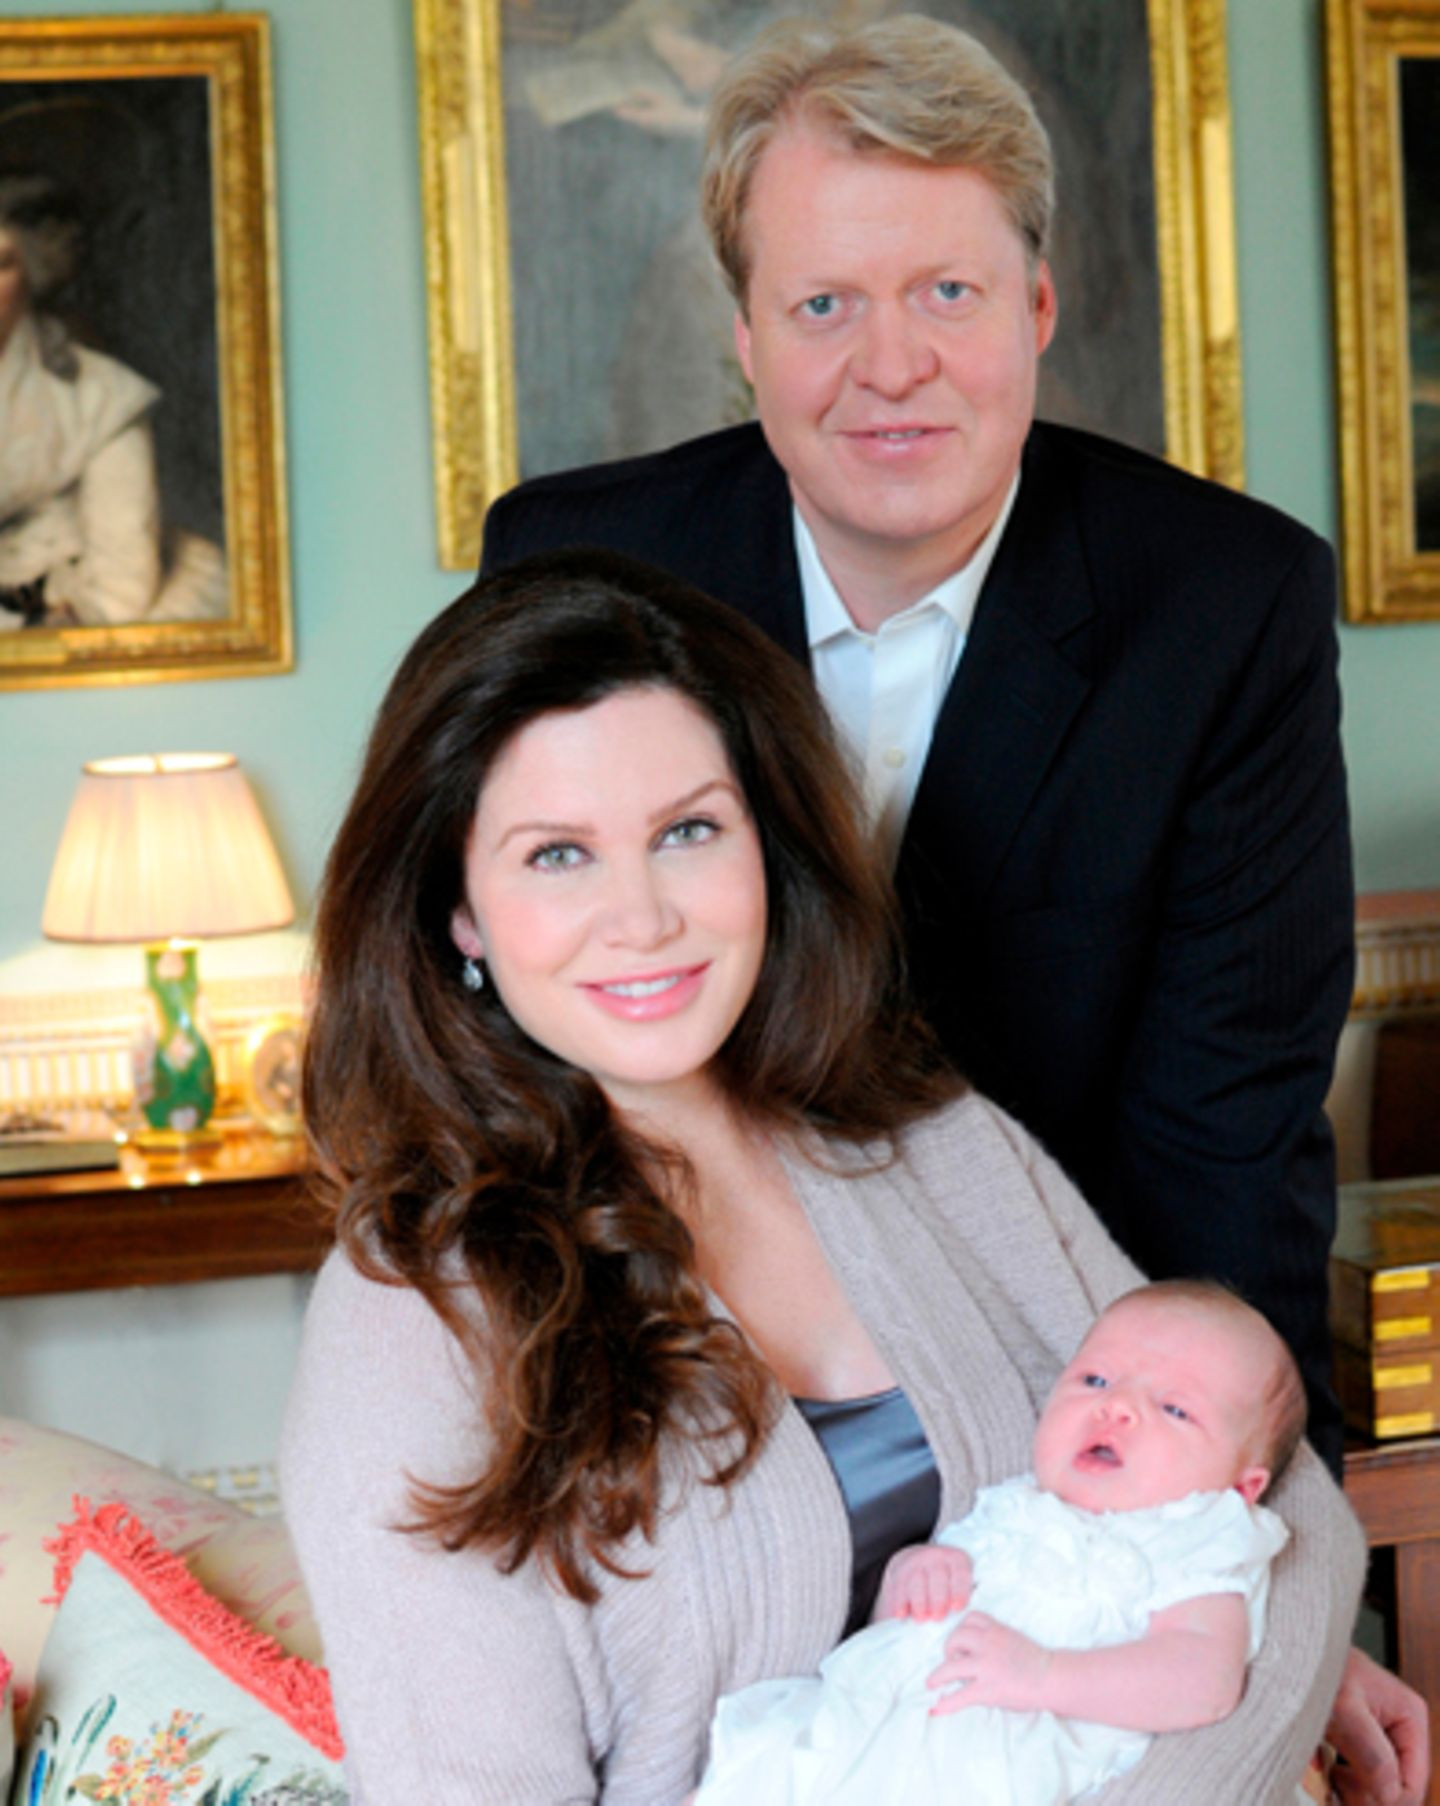 Earl Spencer, Lady Spencer und Charlotte Diana Spencer